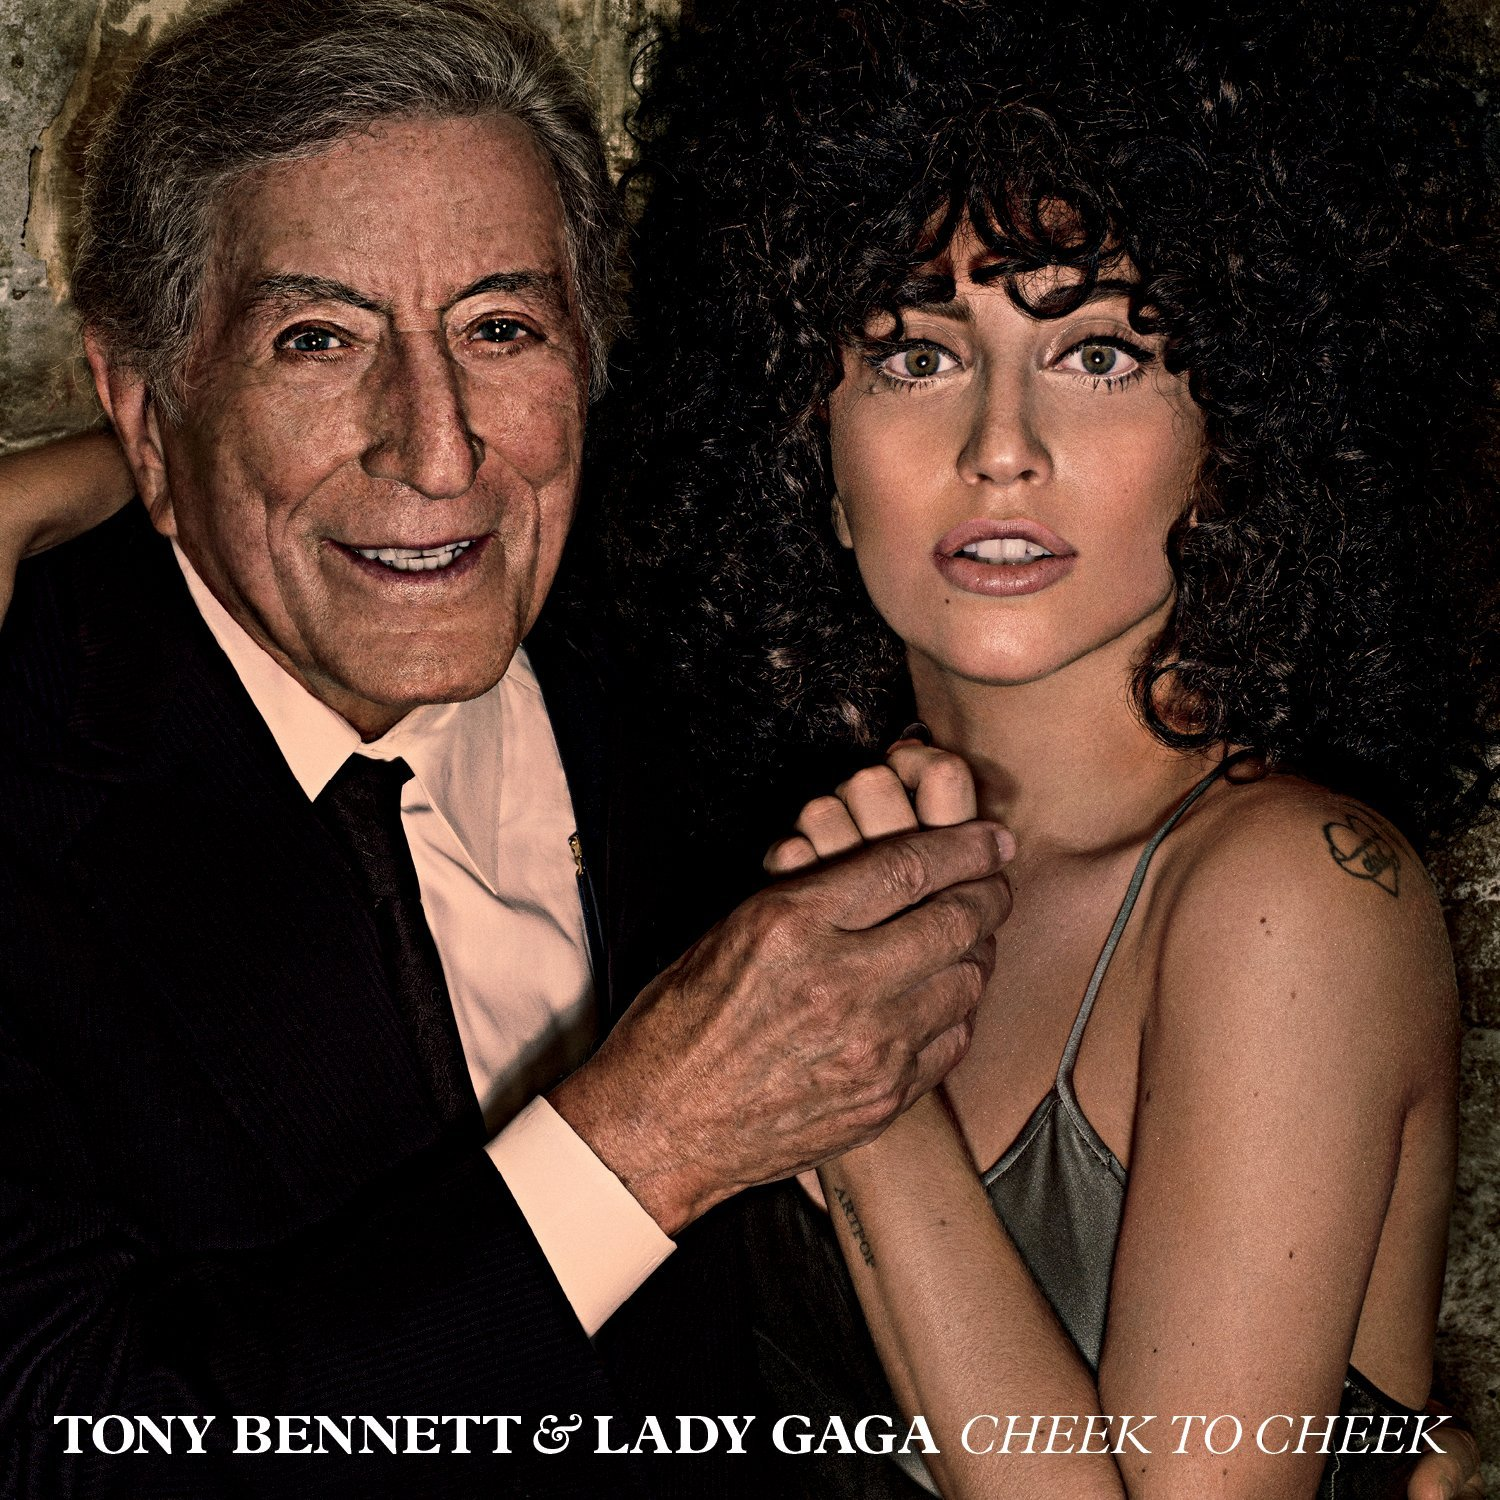 cheektocheekgagabennett Lady Gaga Doesnt Need Pop (Pop Needs Lady Gaga)